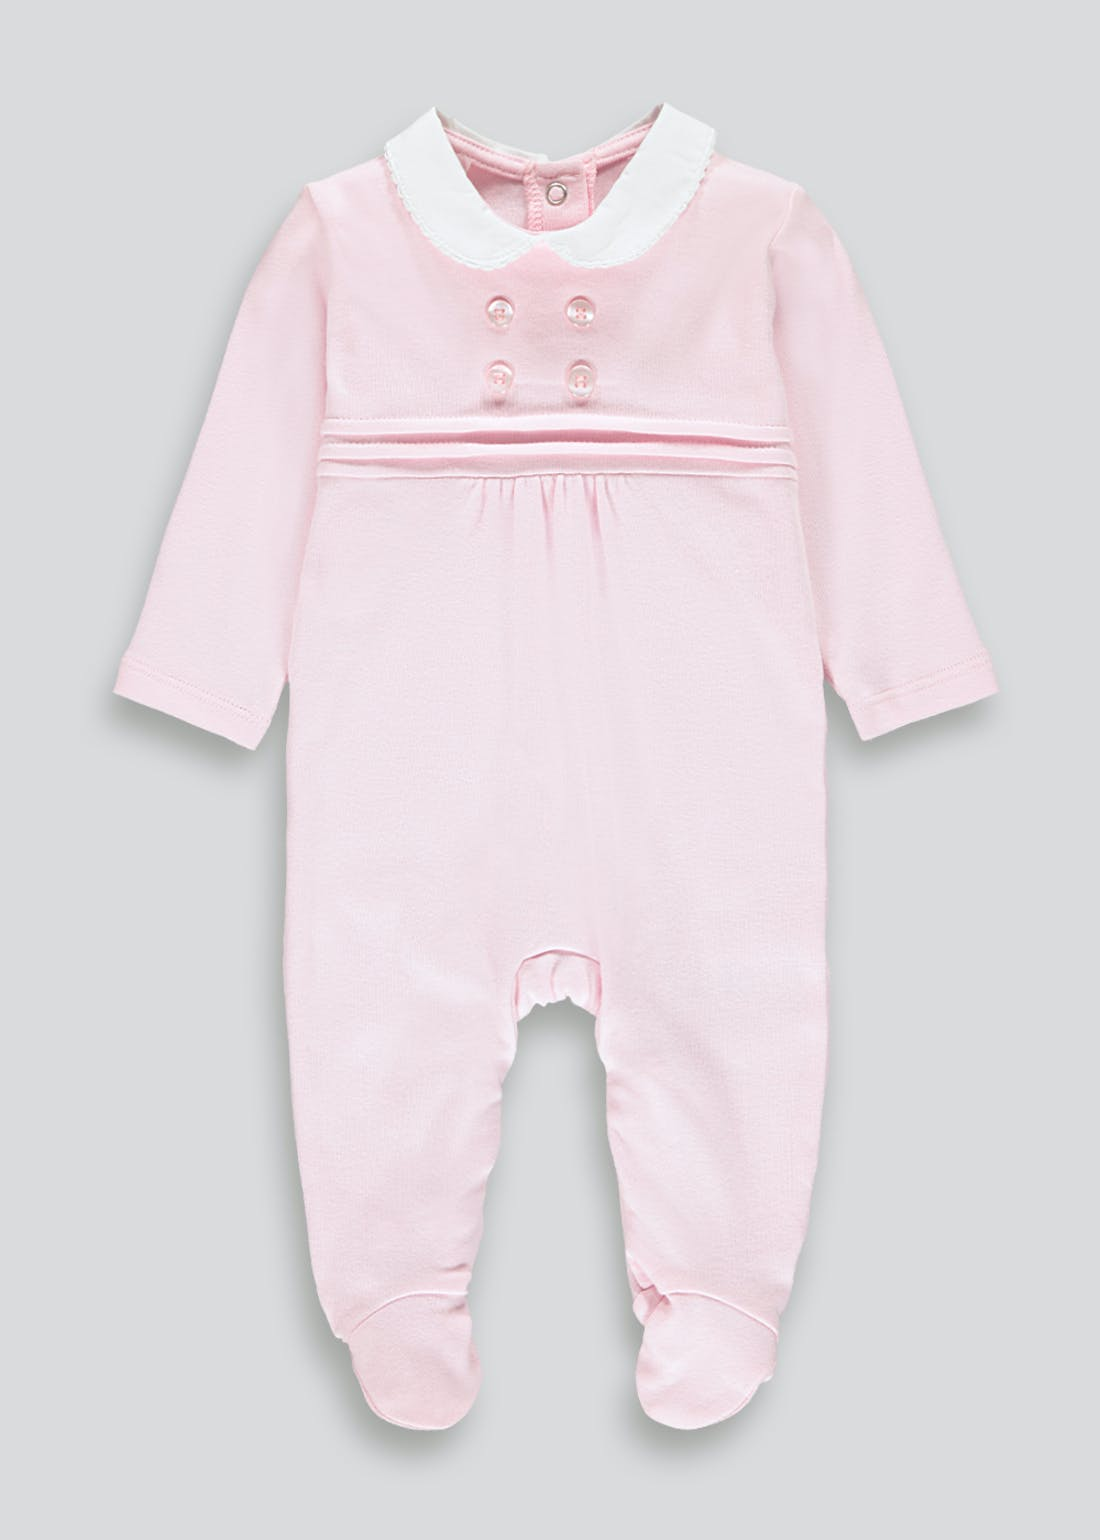 Girls Traditional Baby Grow (Tiny Baby-12mths)